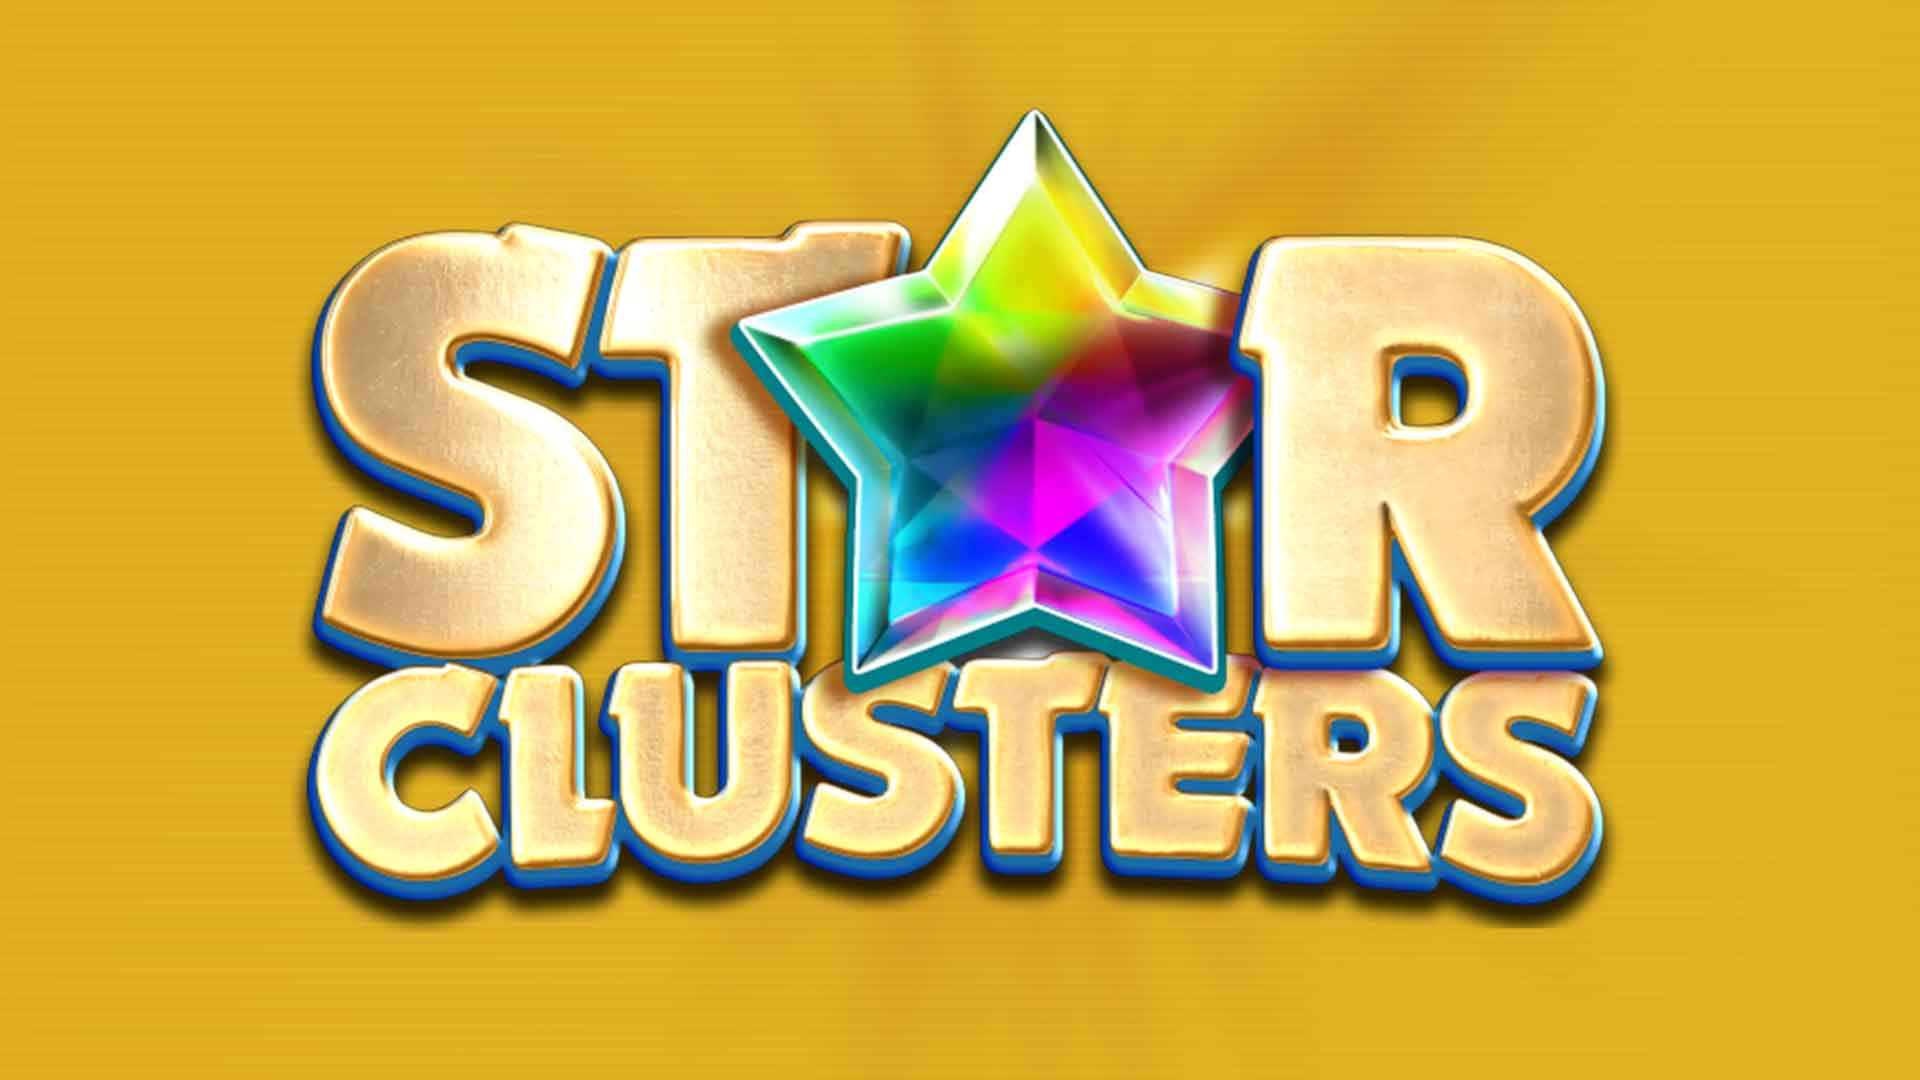 Star Clusters Review